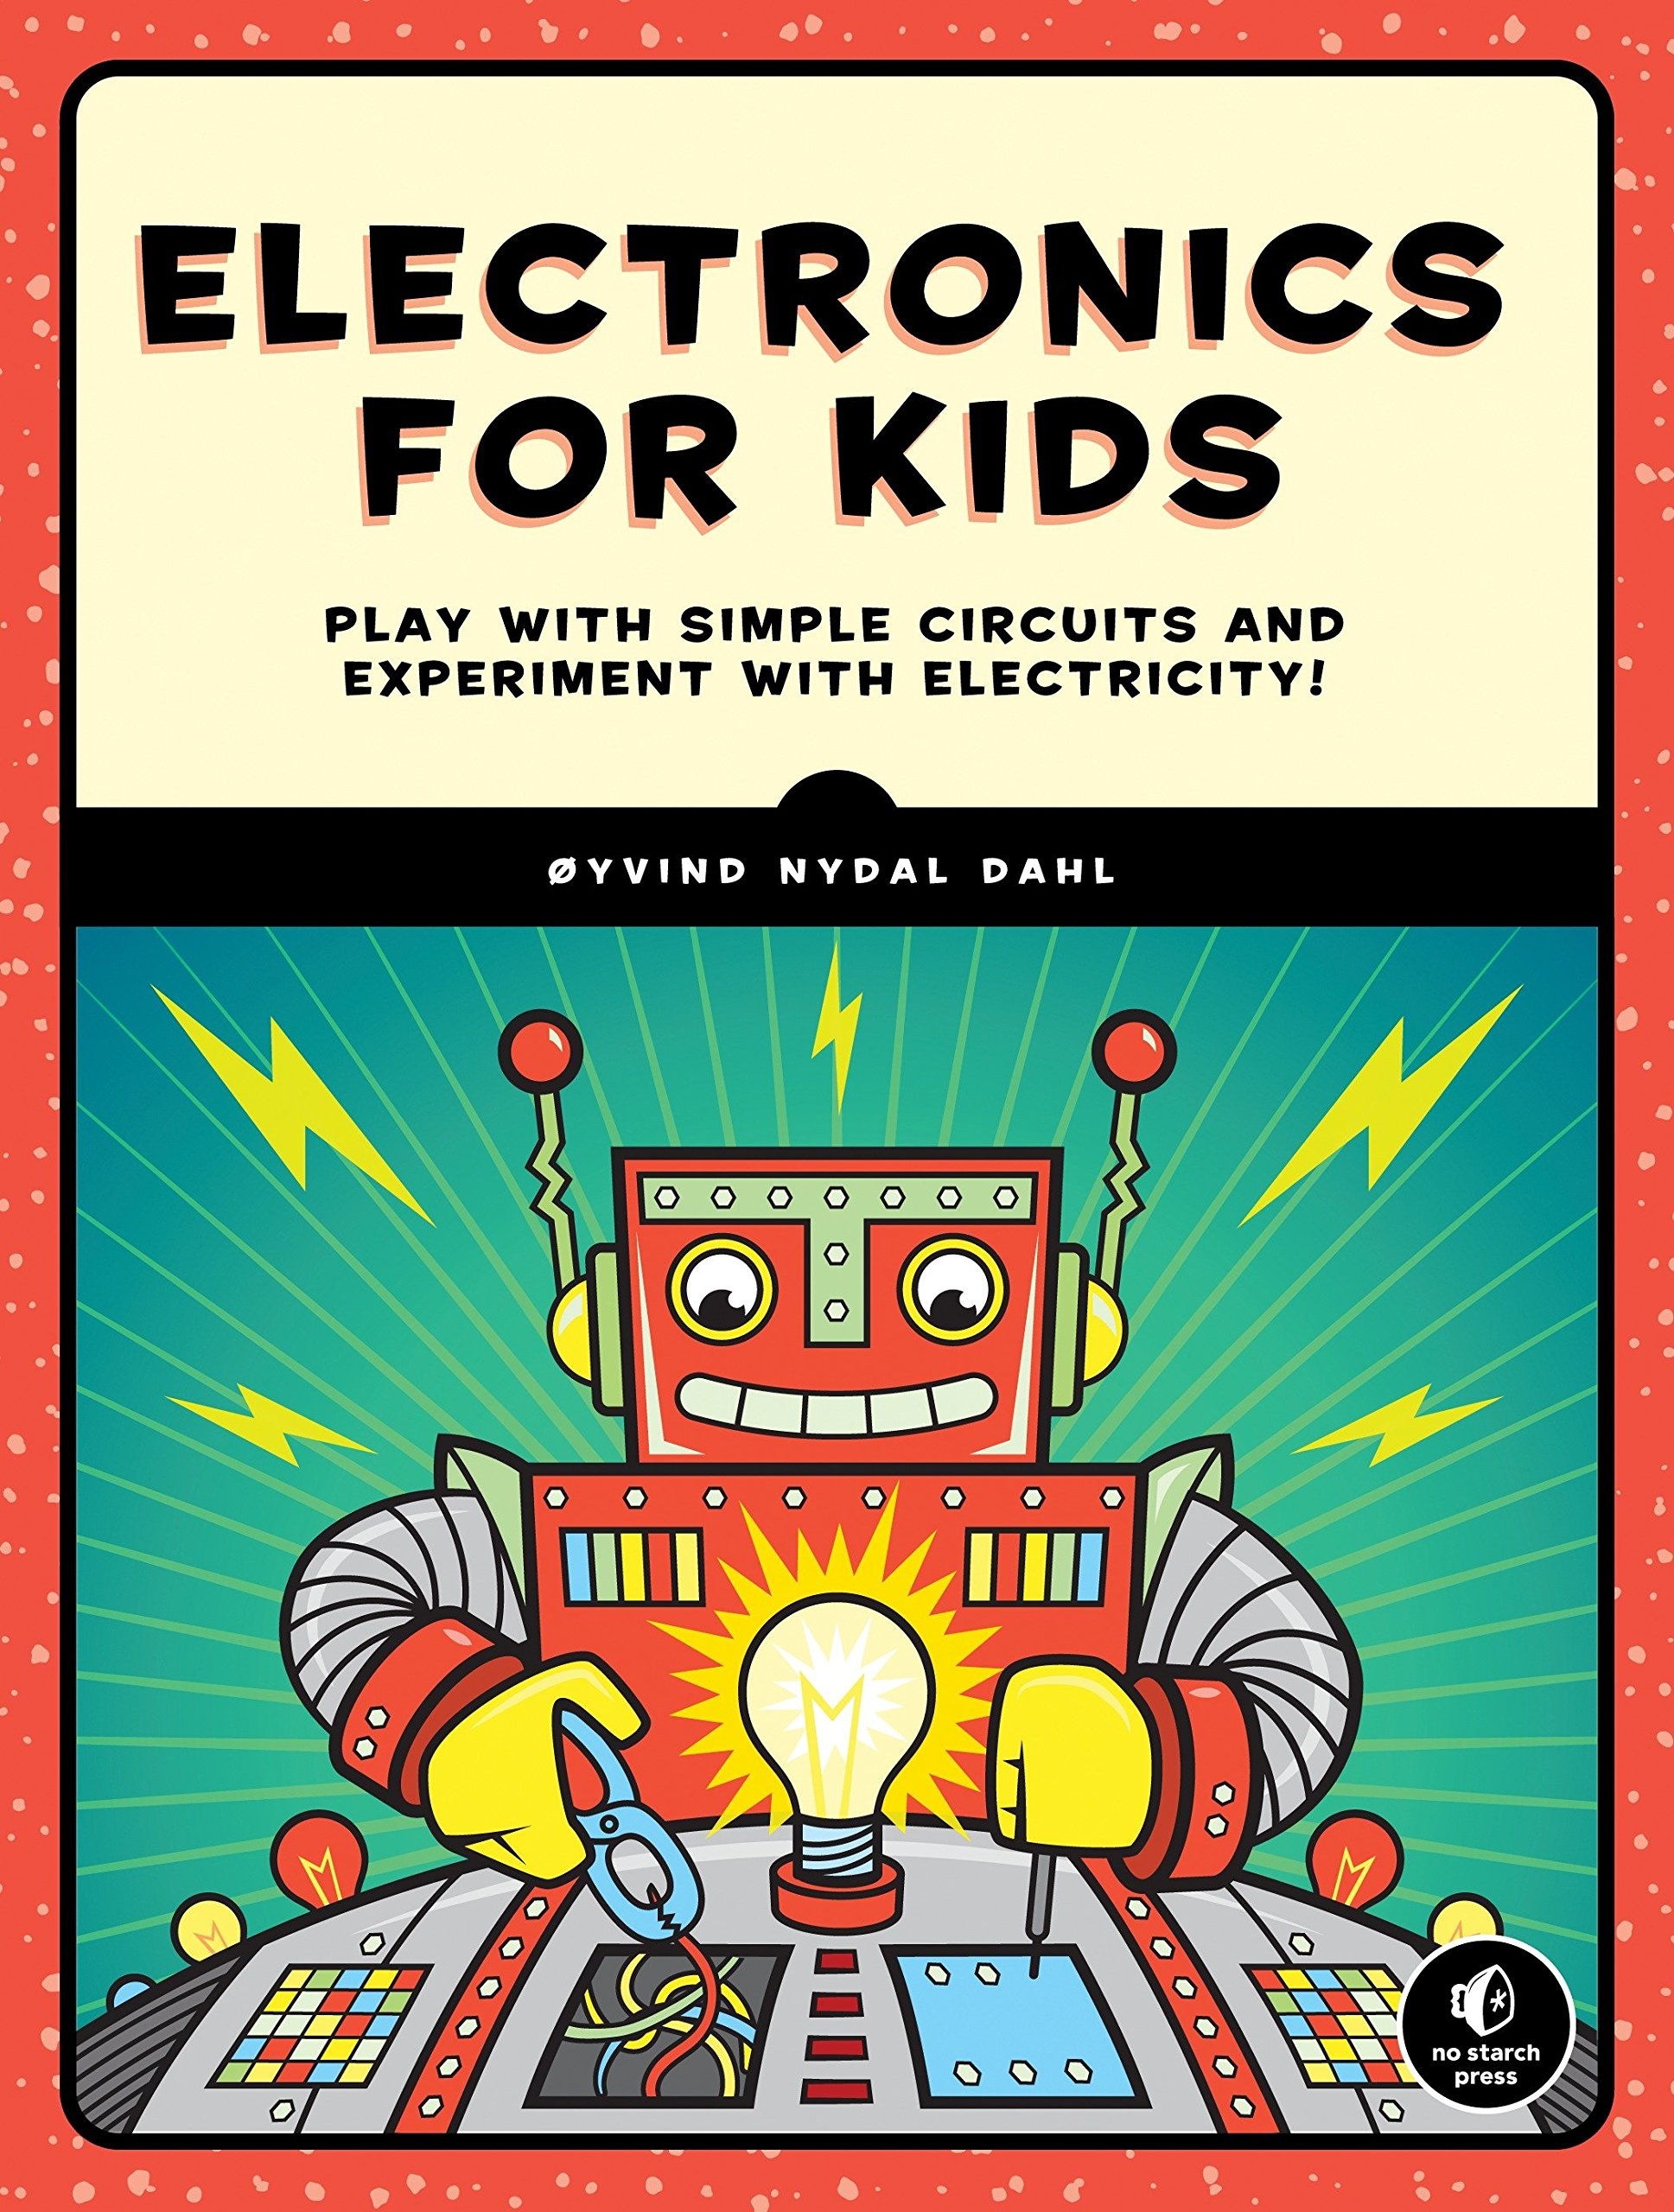 Pdf 2570free Electronics For Kids Play With Simple Circuits Elenco Scg125 Snap Green Alternative Energy Kit Learning And Experiment Electricity Oyvind Nydal